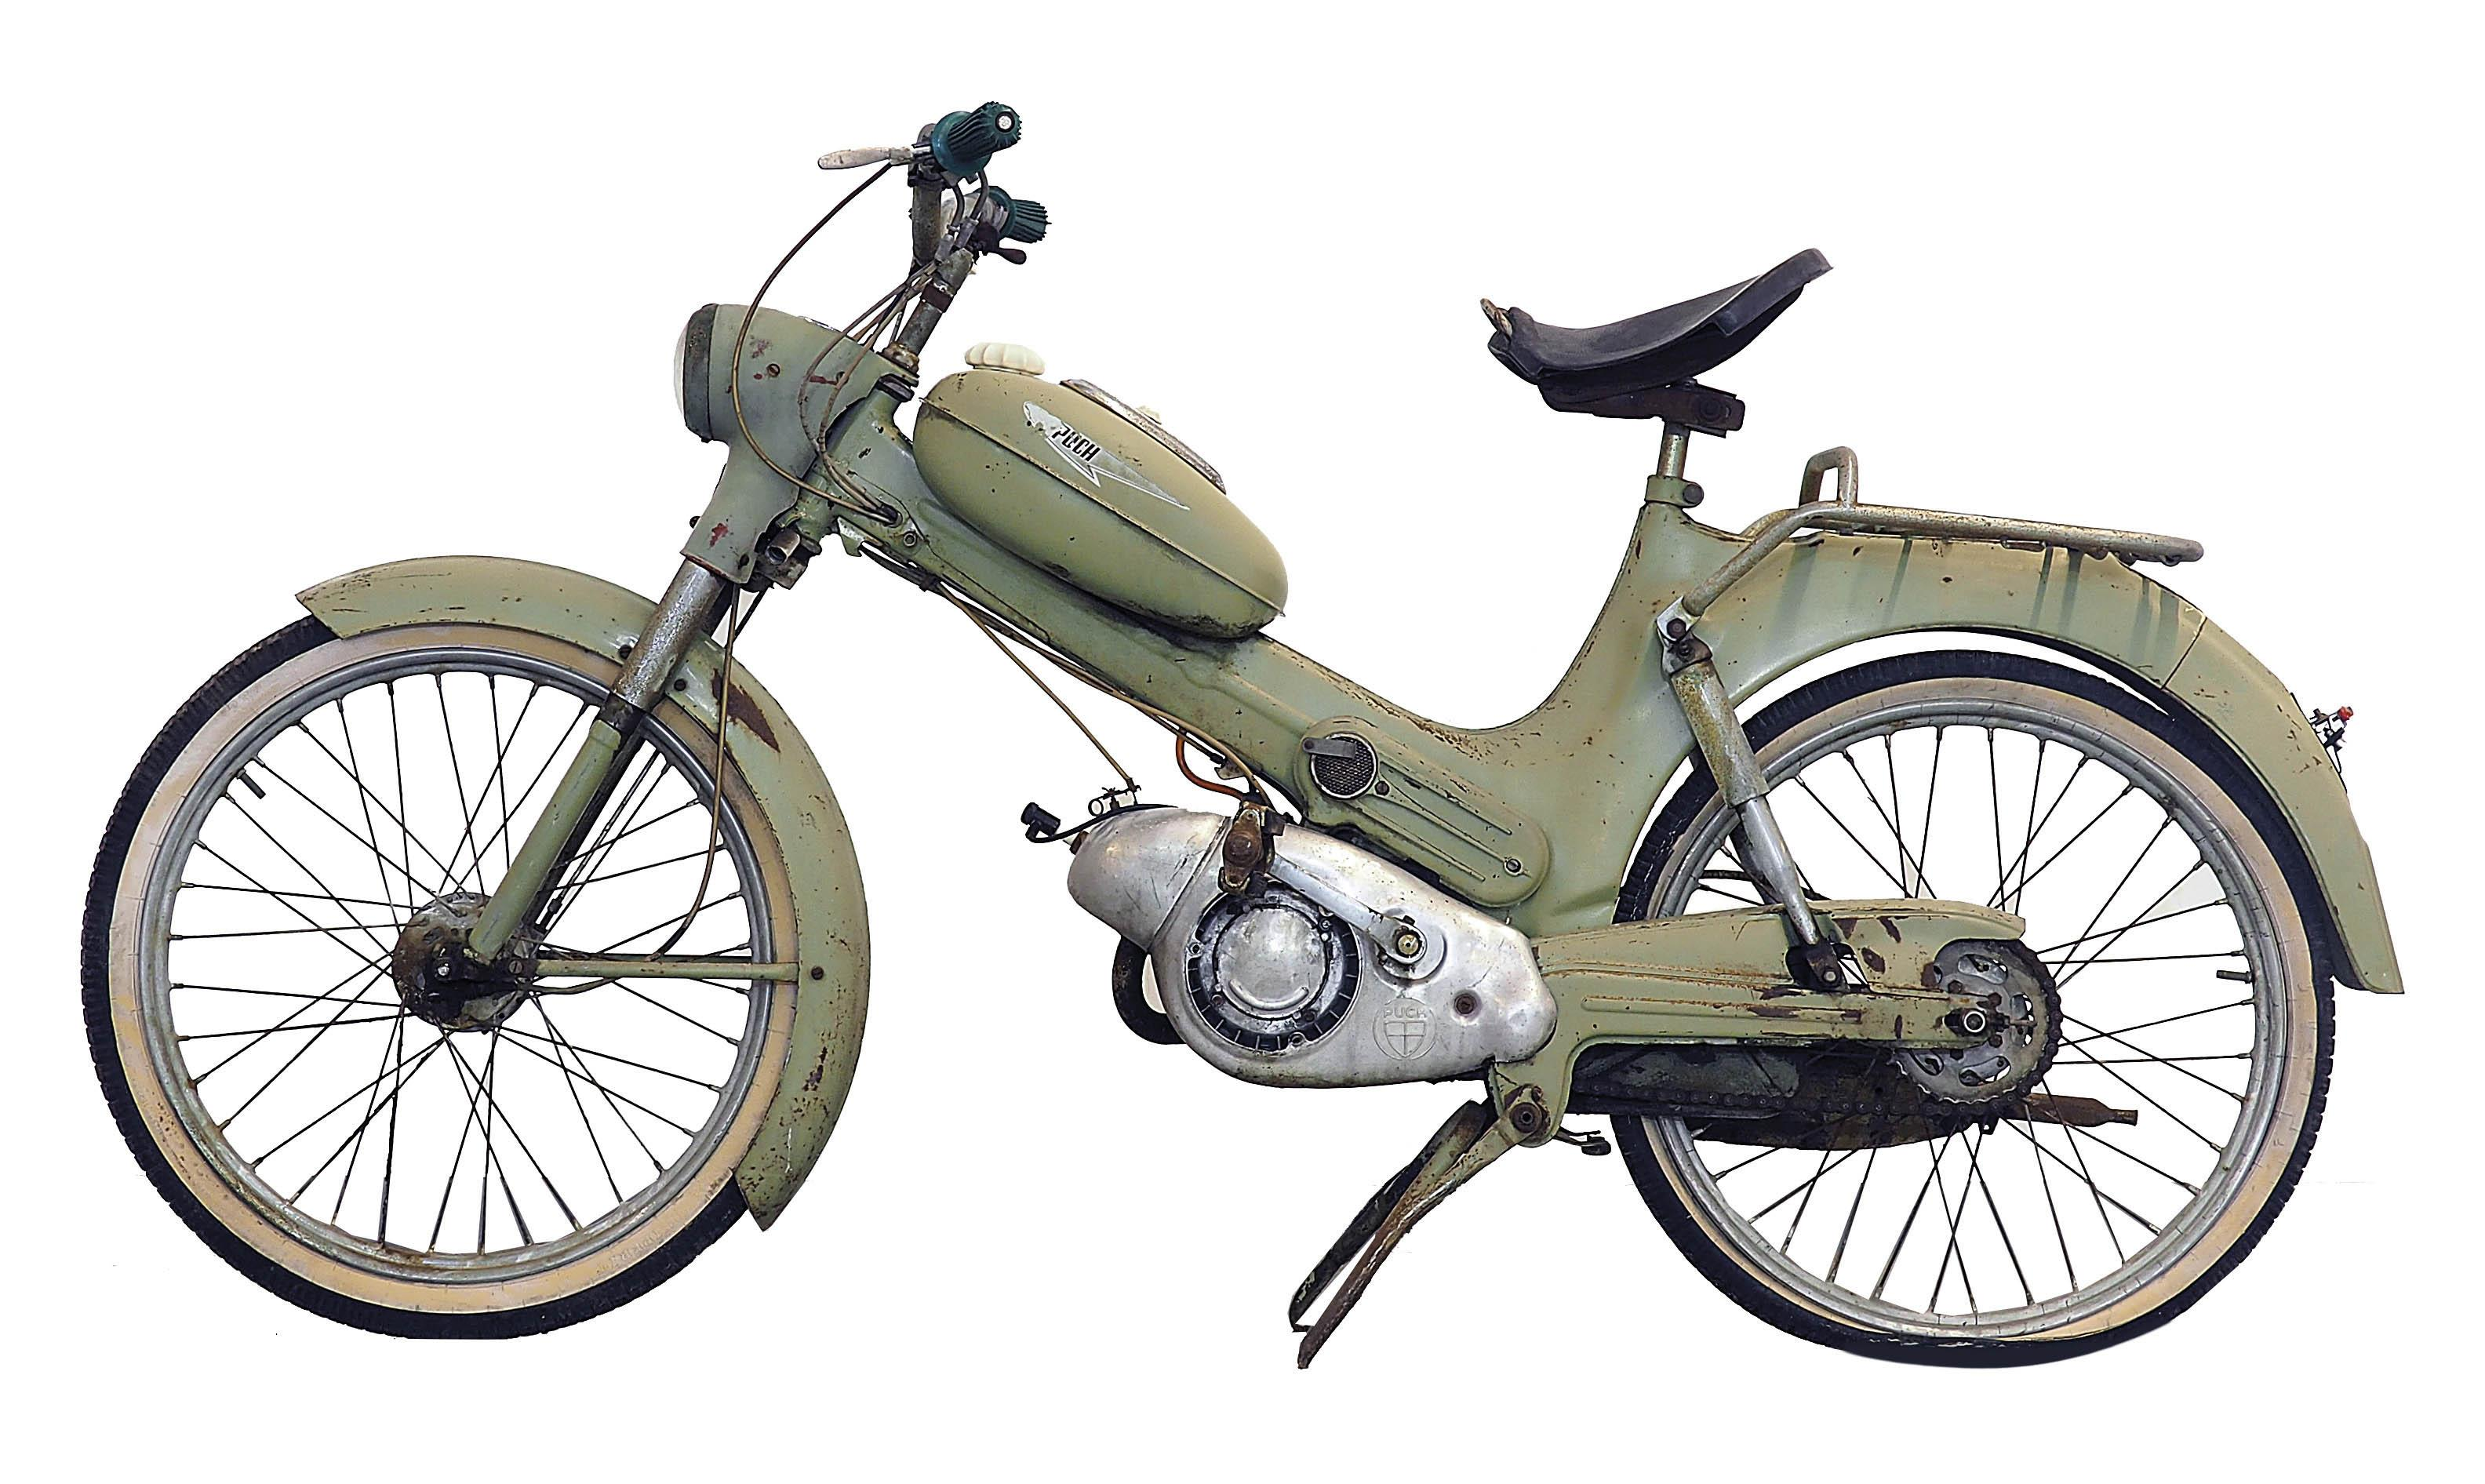 c  1959 Puch MS 50 - Scootermania reloaded 2019/04/05